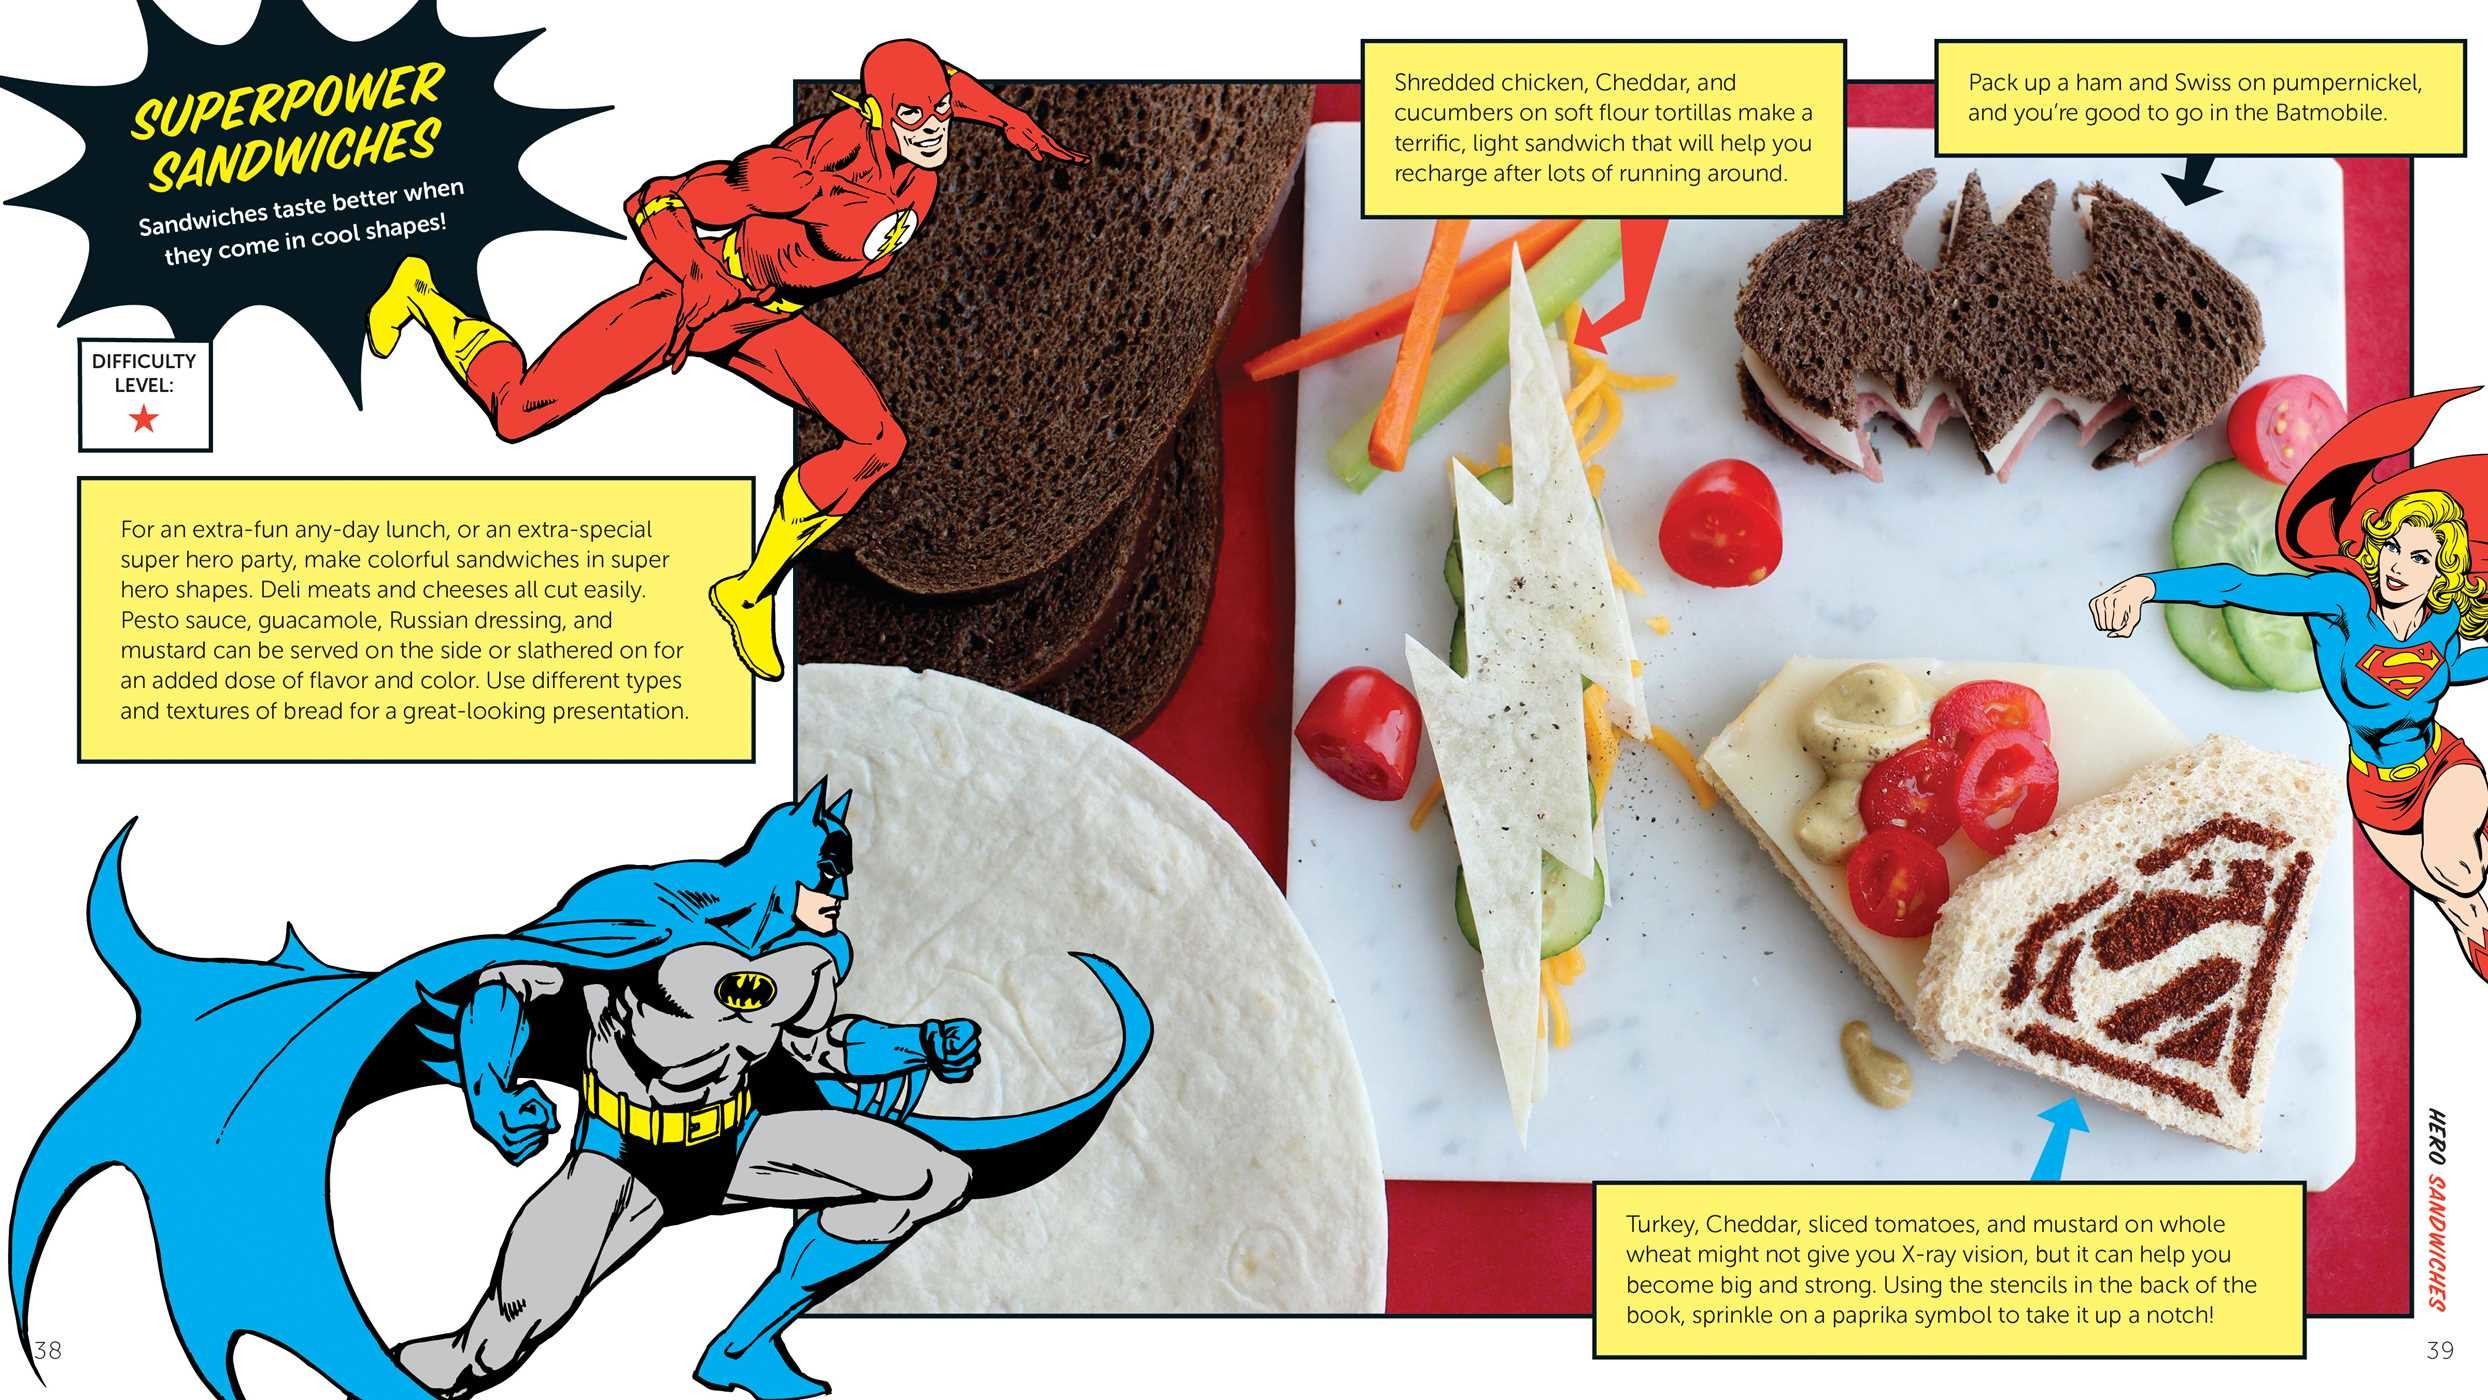 The official dc super hero cookbook 9781935703914.in04